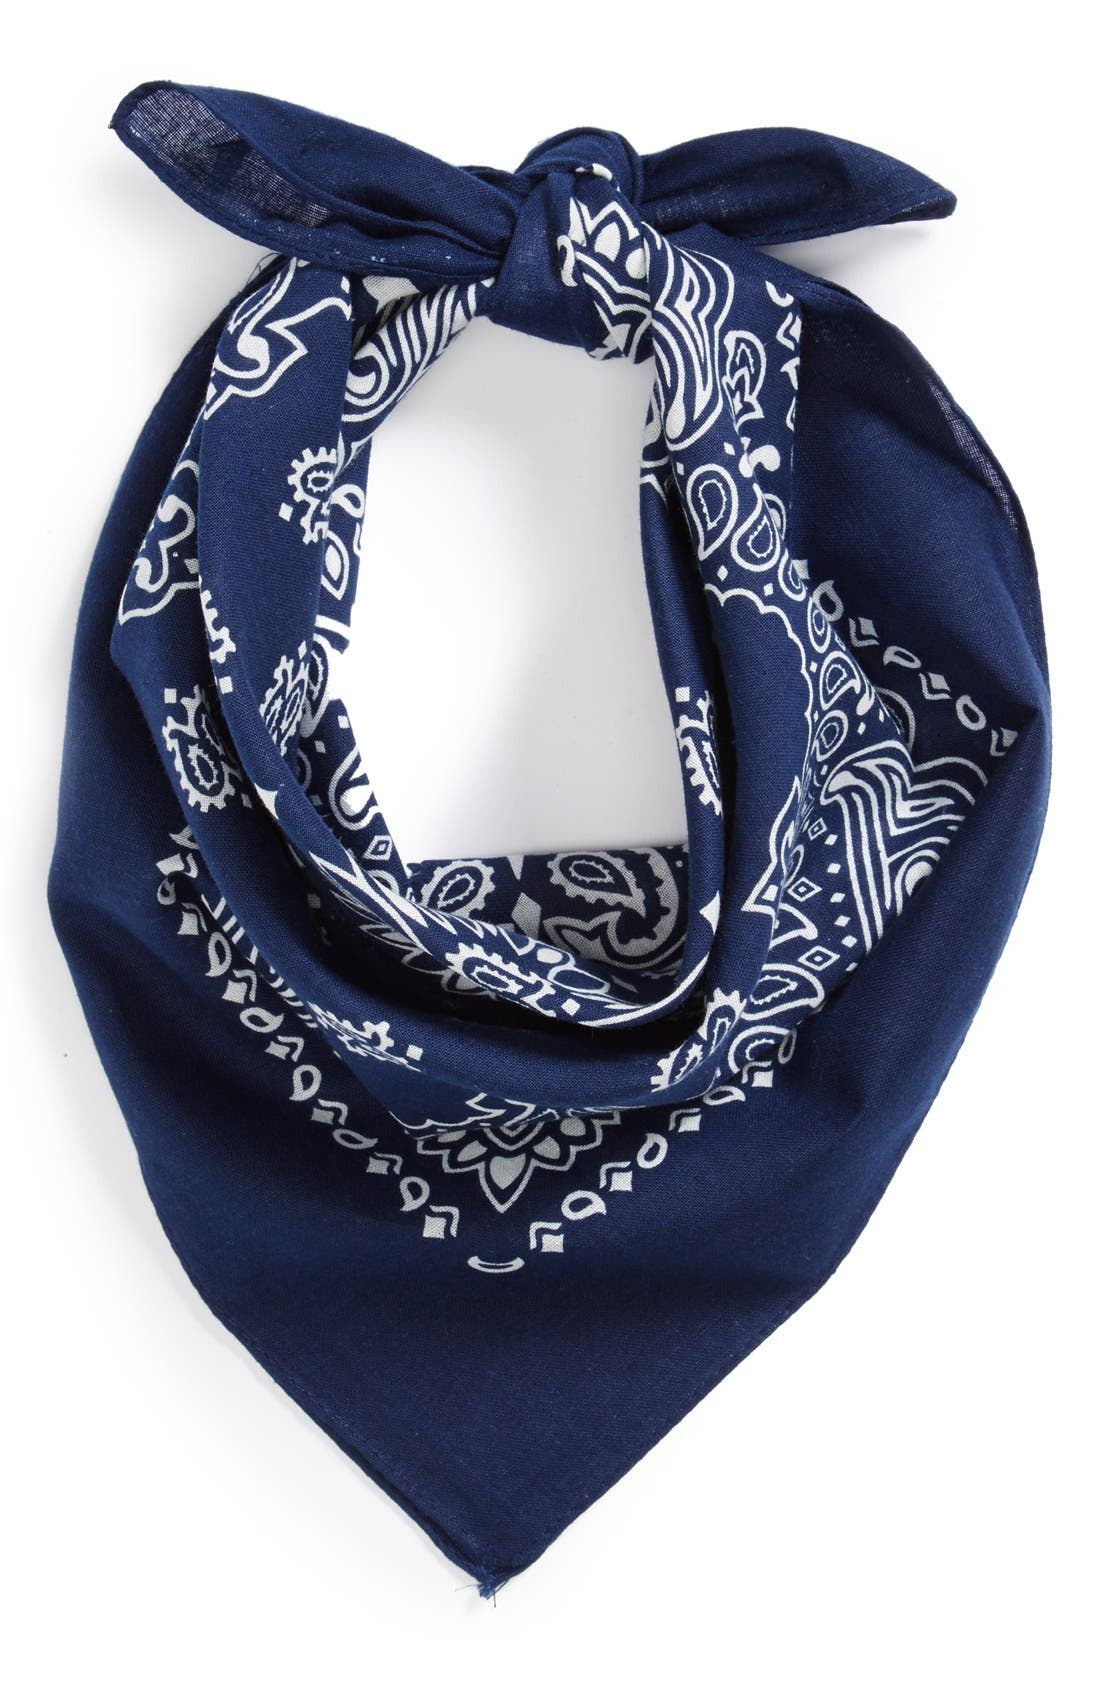 Alternate Image 1 Selected - Topman Paisley Print Bandana